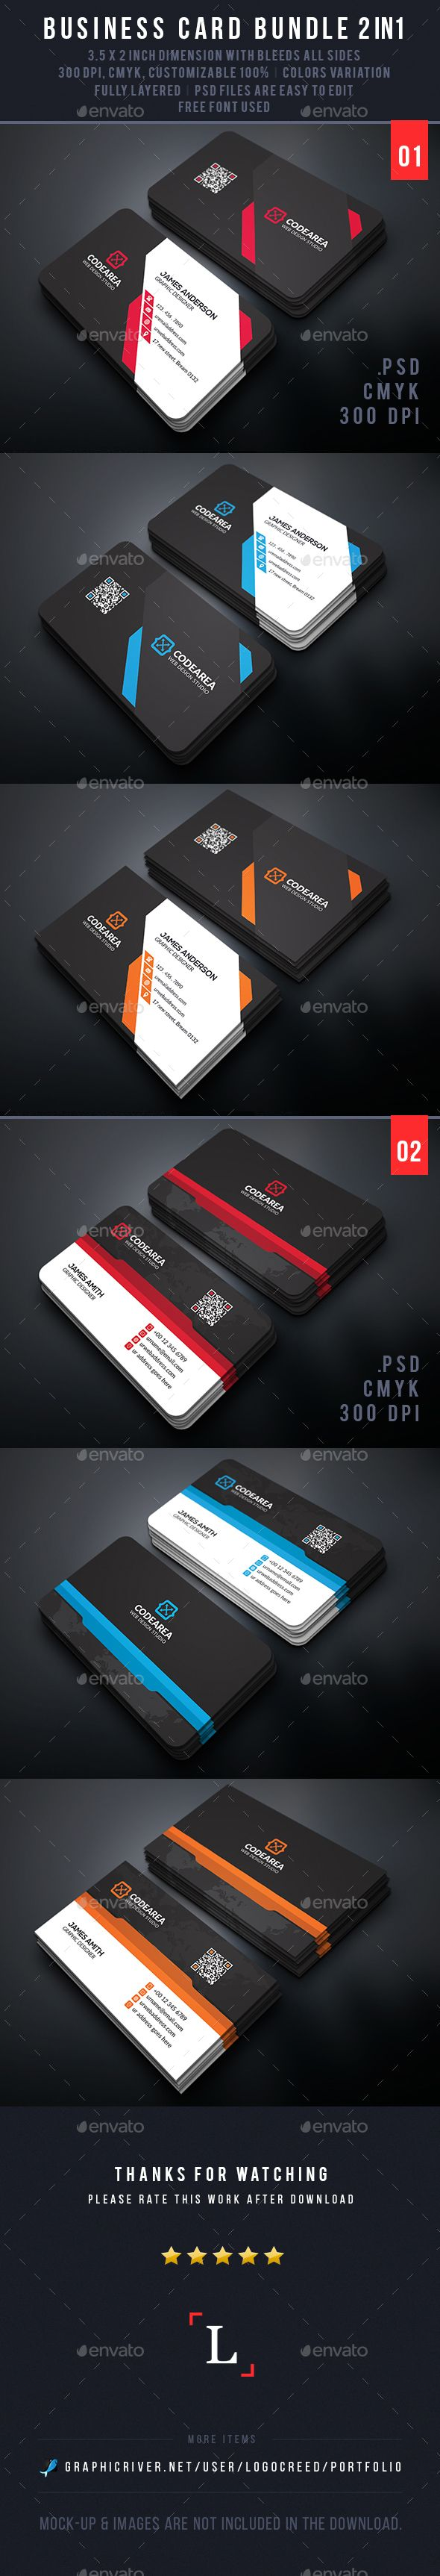 364 best business card images on pinterest